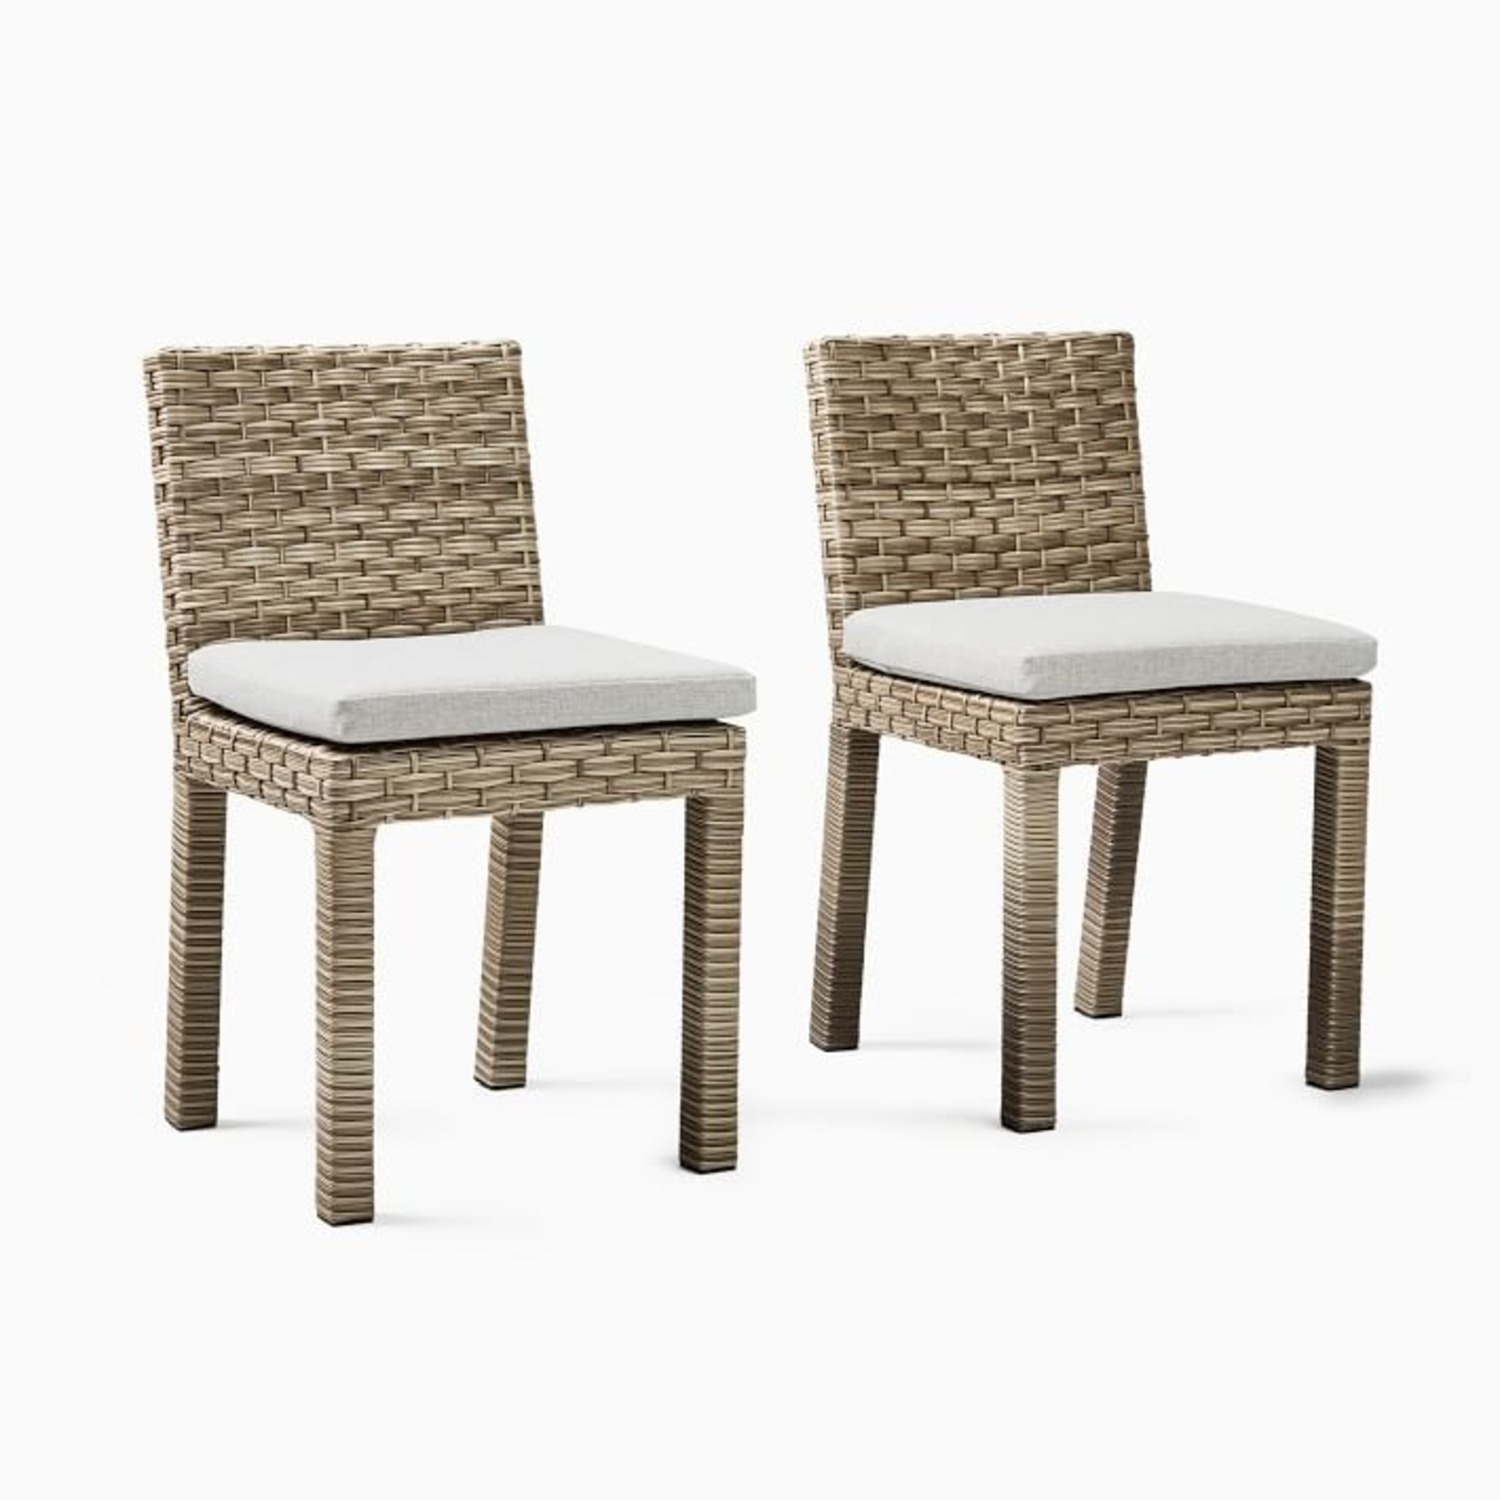 West Elm Urban Outdoor Dining Chair, Set of 2 - image-1